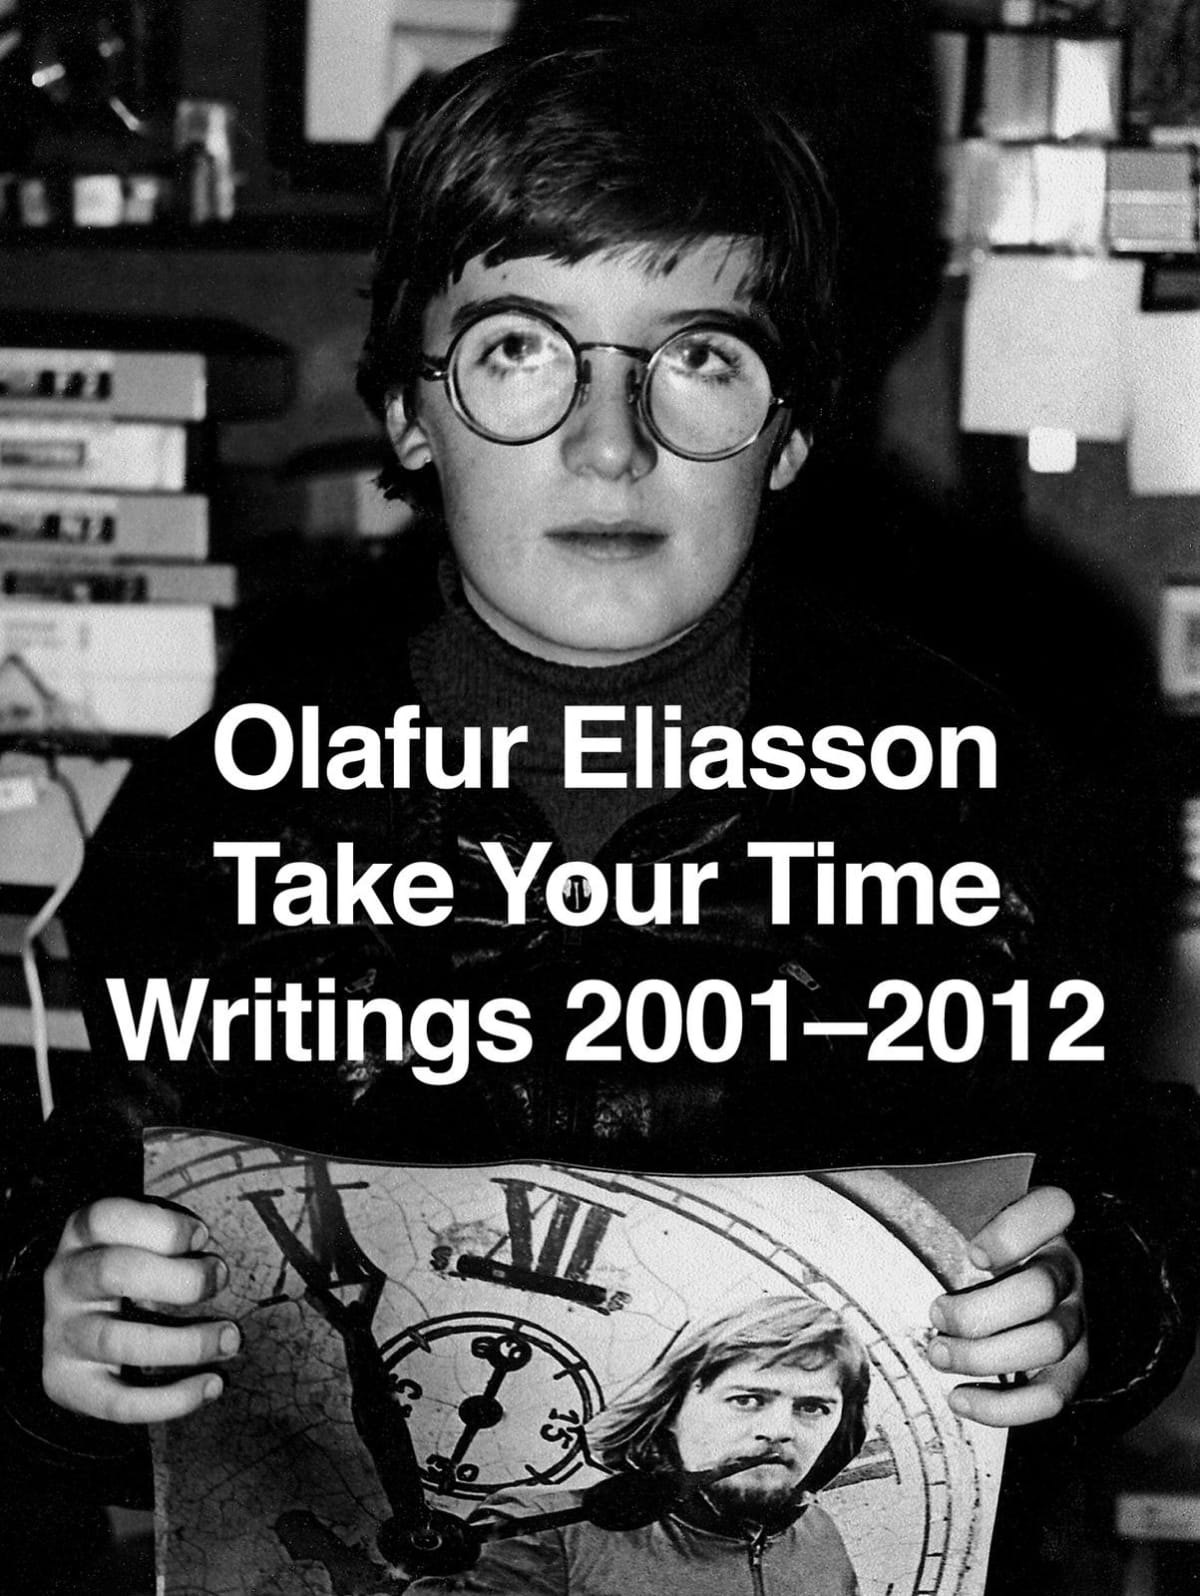 Olafur Eliasson Take Your Time: Writings 2001-2012